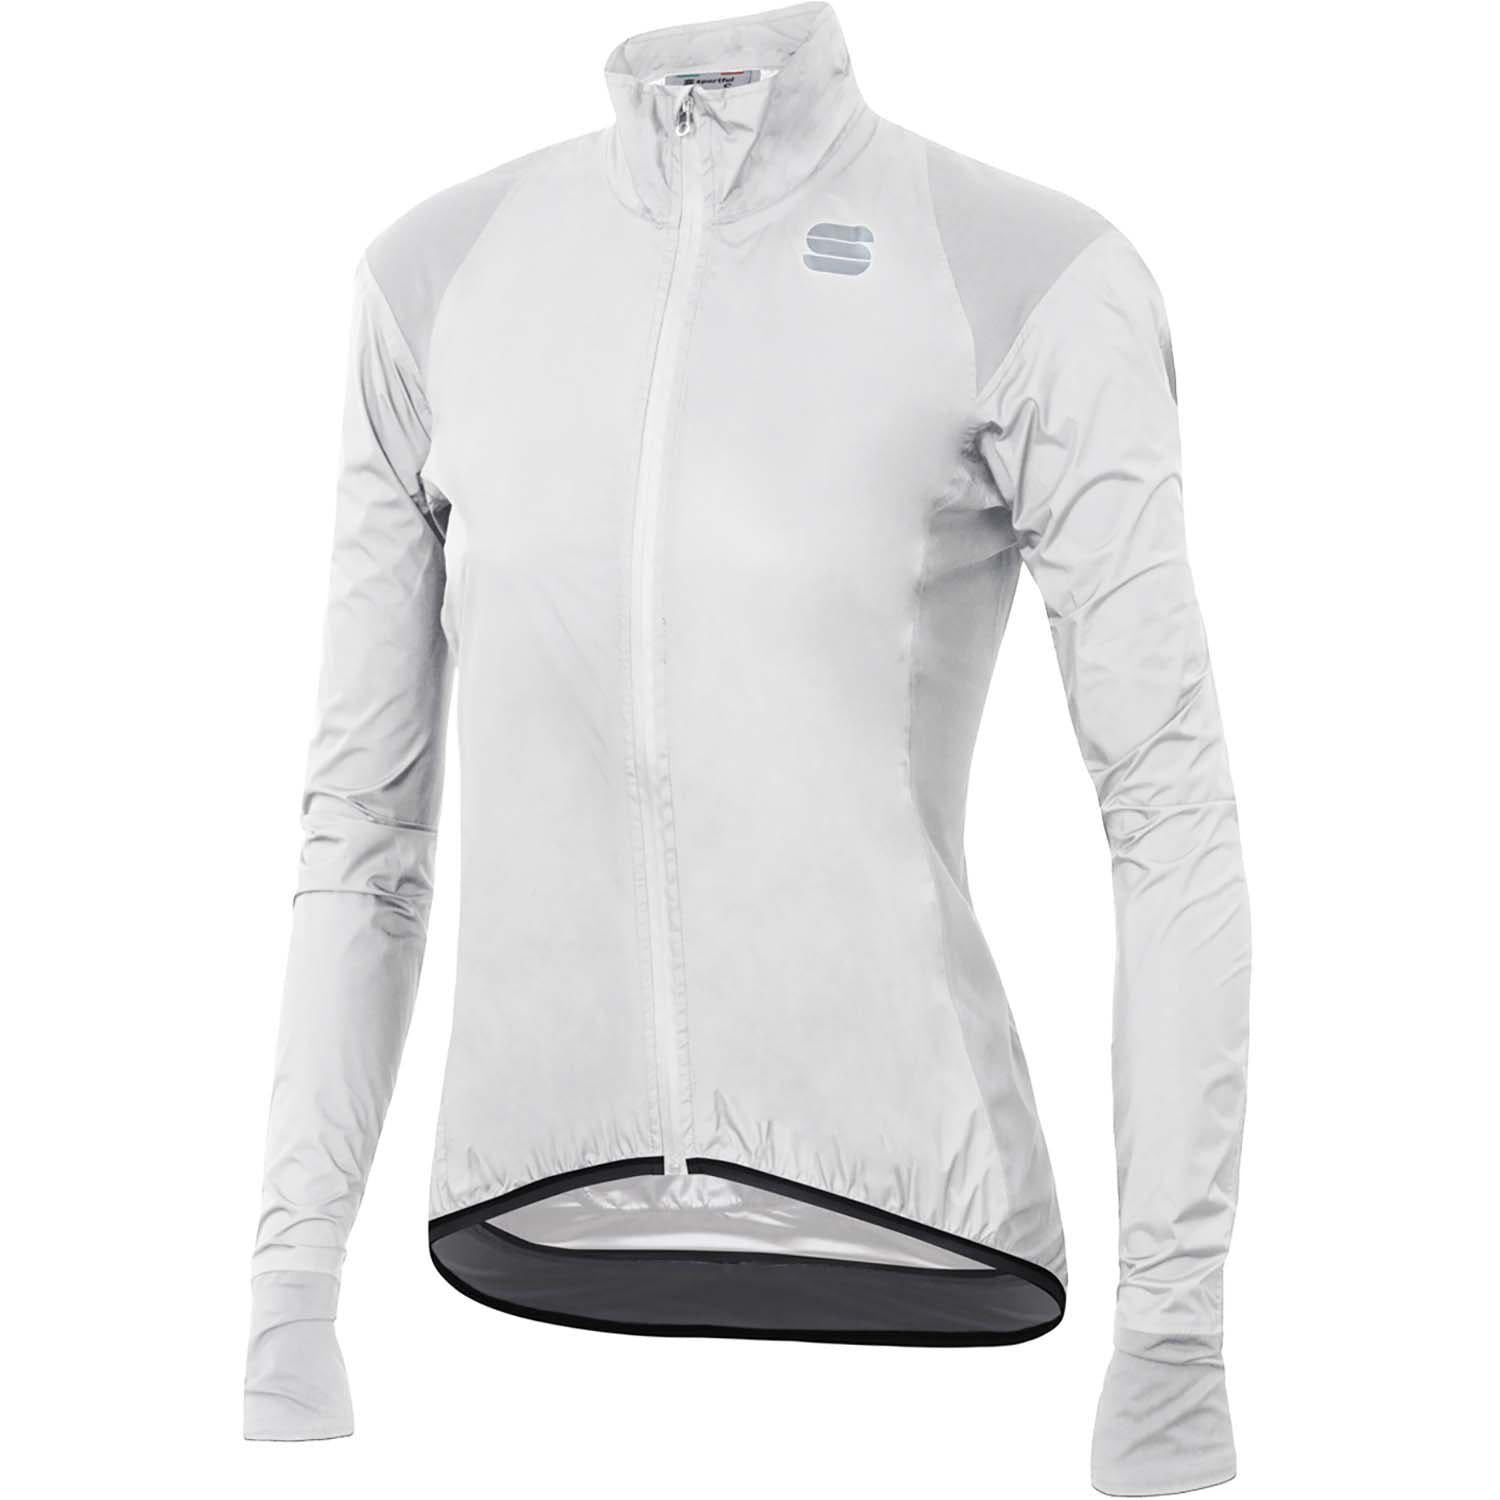 Sportful-Sportful Hot Pack NoRain Women's Jacket-White-XS-SF200861011-saddleback-elite-performance-cycling